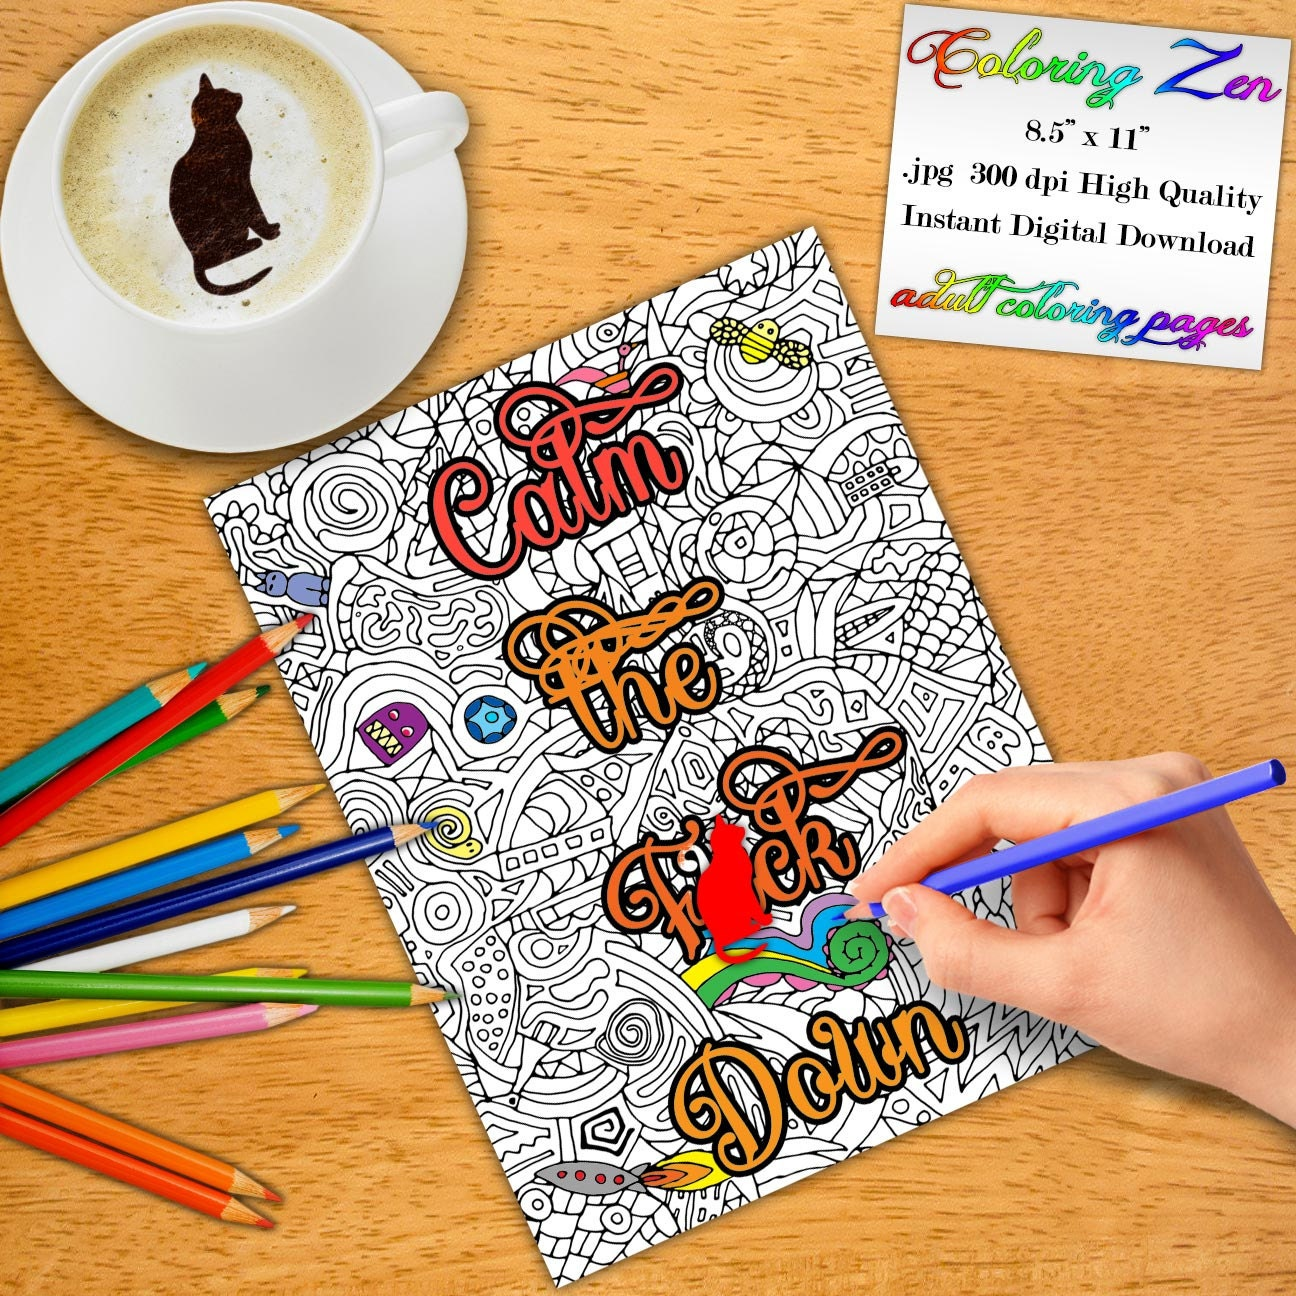 Swearing colouring in book nz -  Zoom